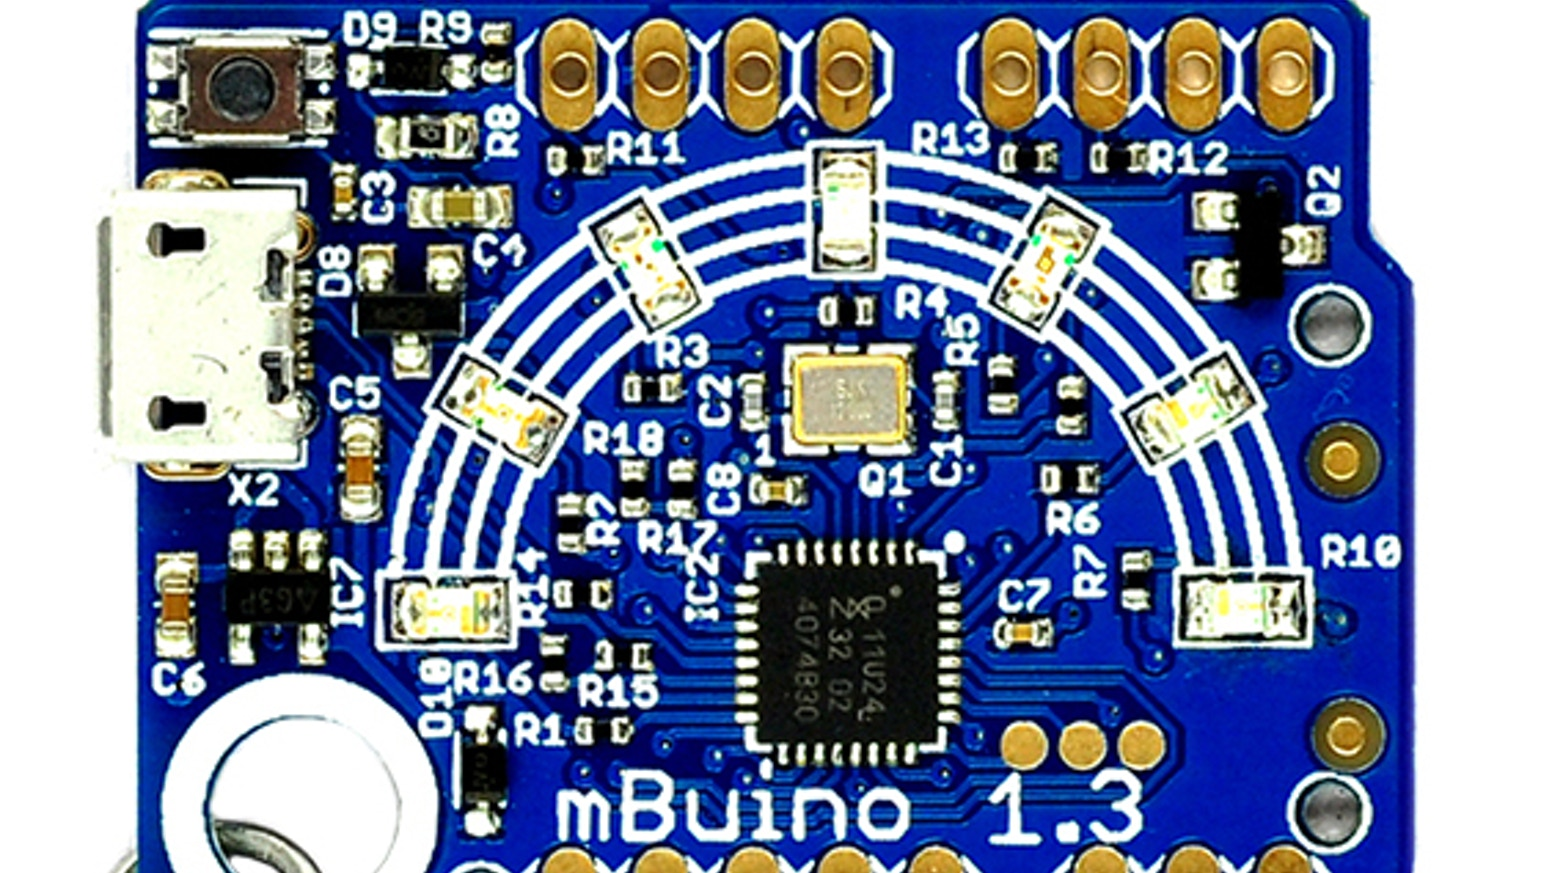 mBuino, a programmable mbed keychain by GHI Electronics, LLC